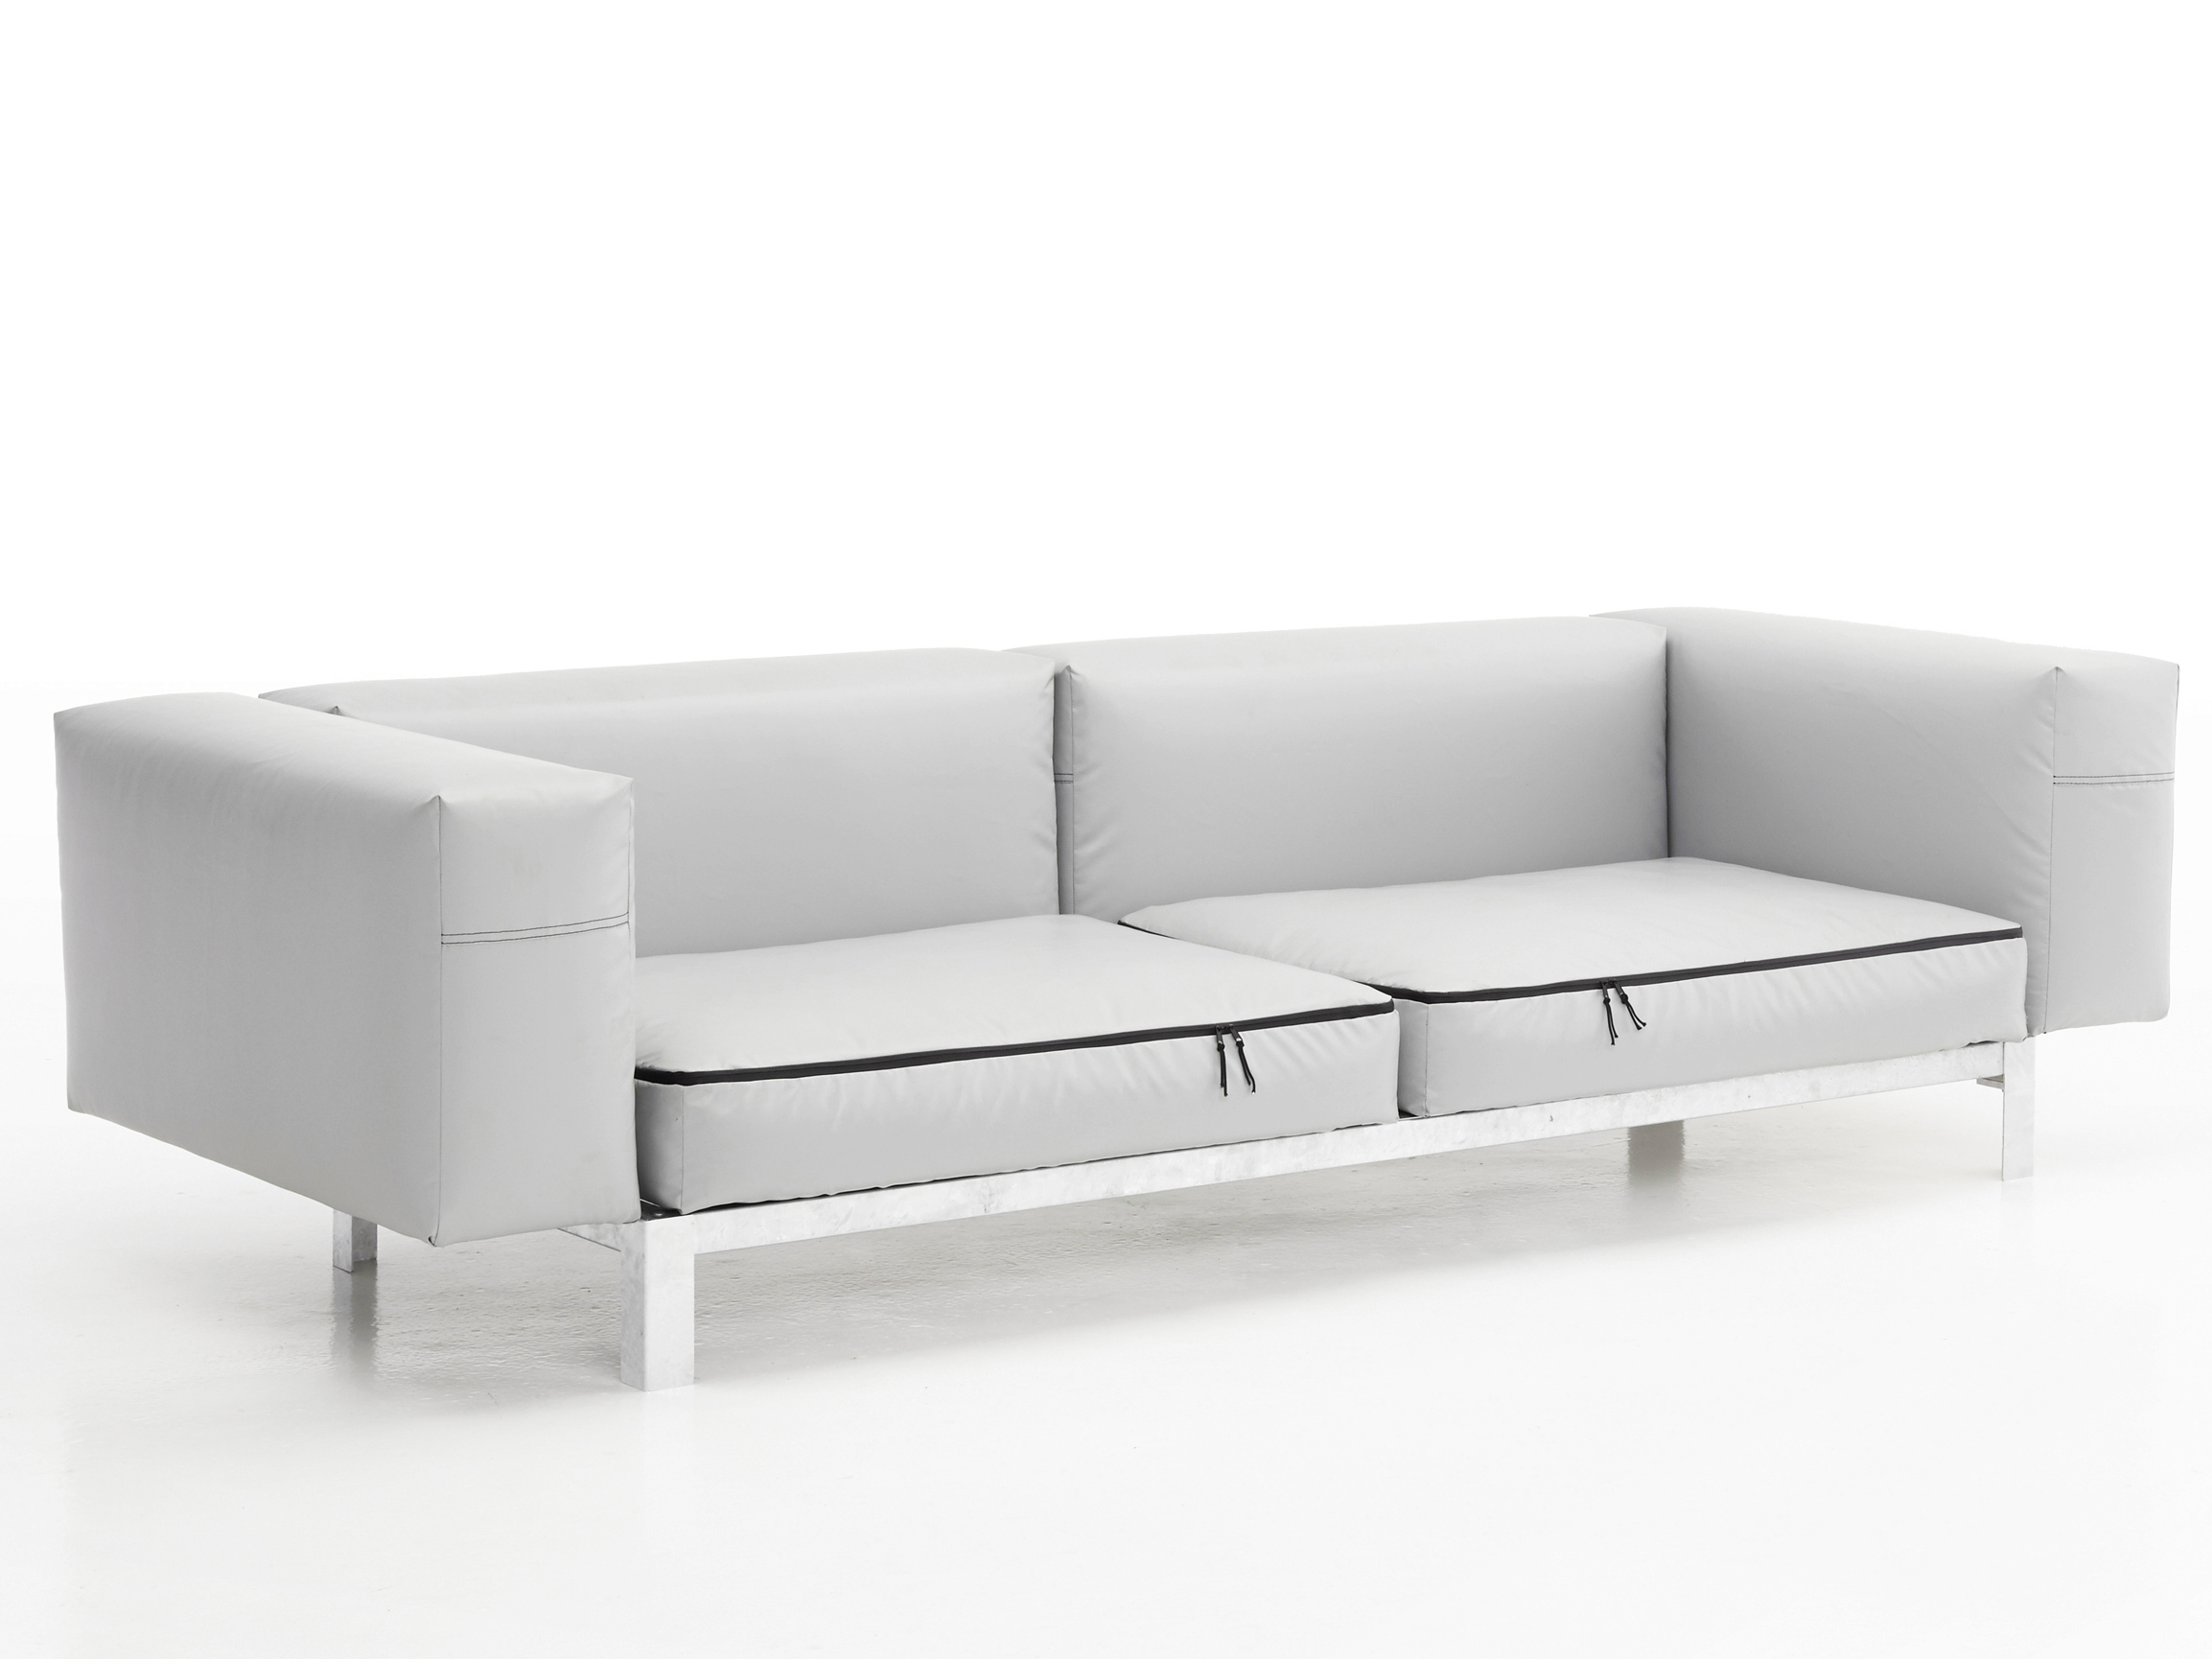 Walrus Sofa by Extremis